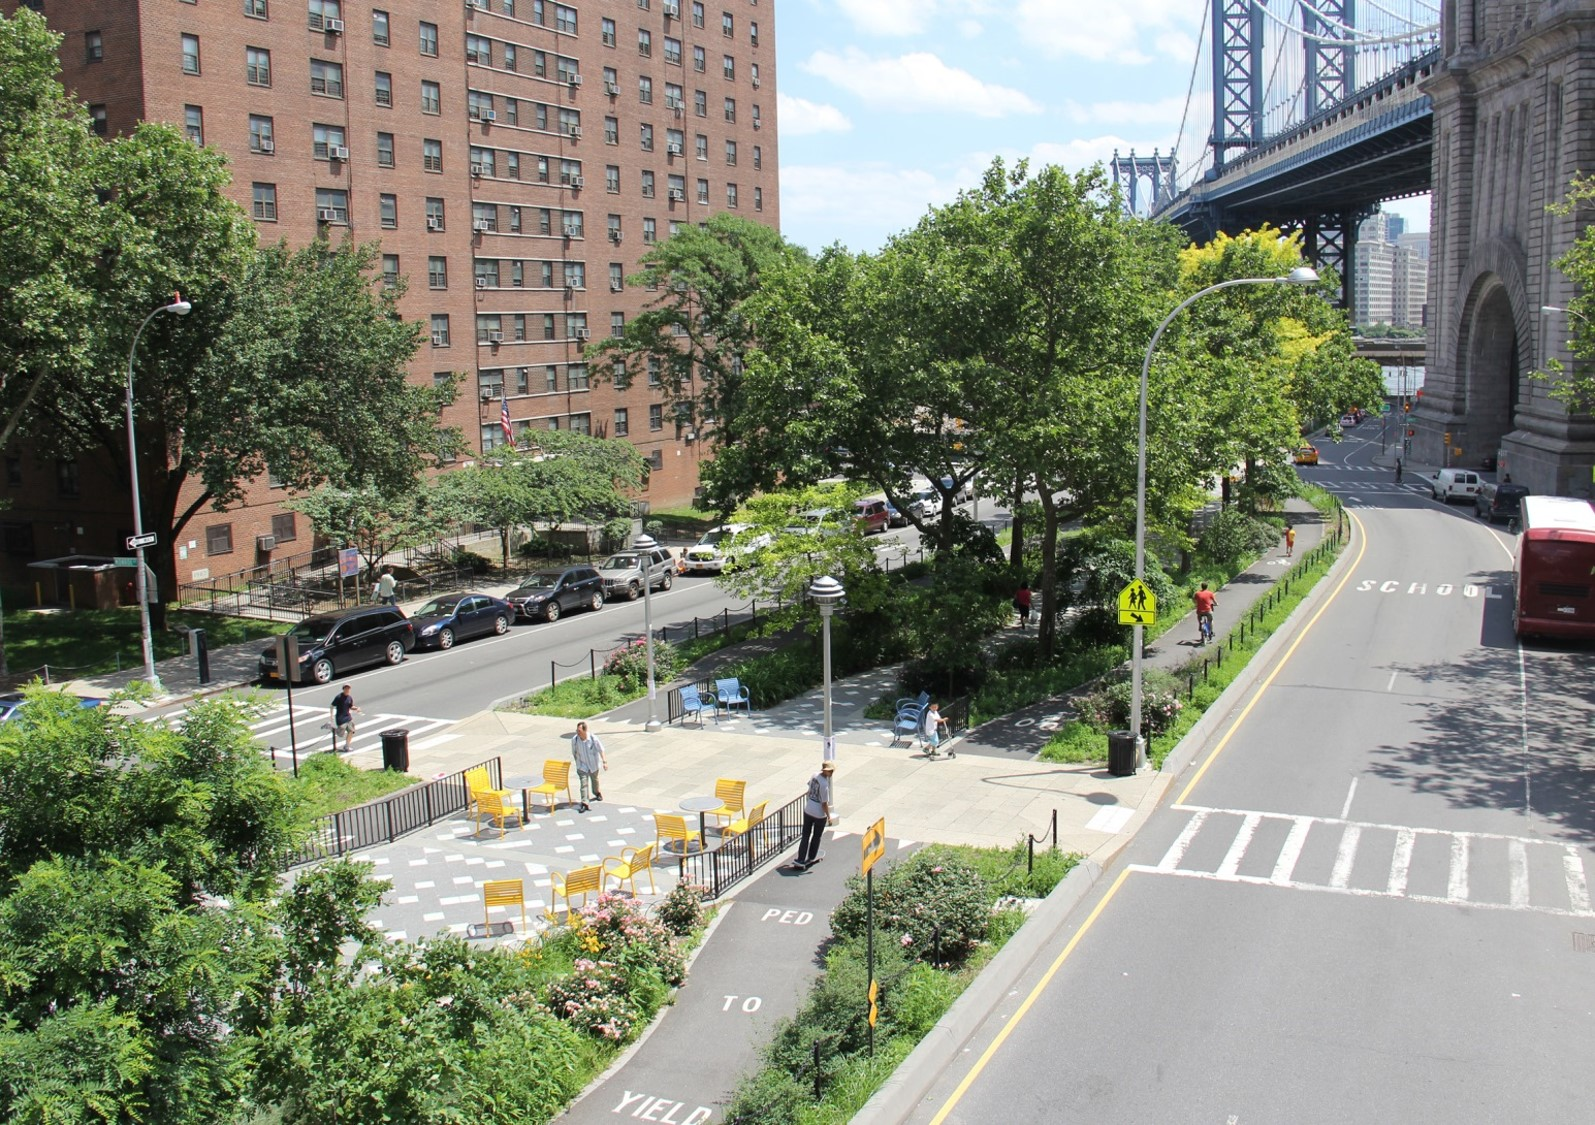 Complete and green street: A street for cars, people, and water